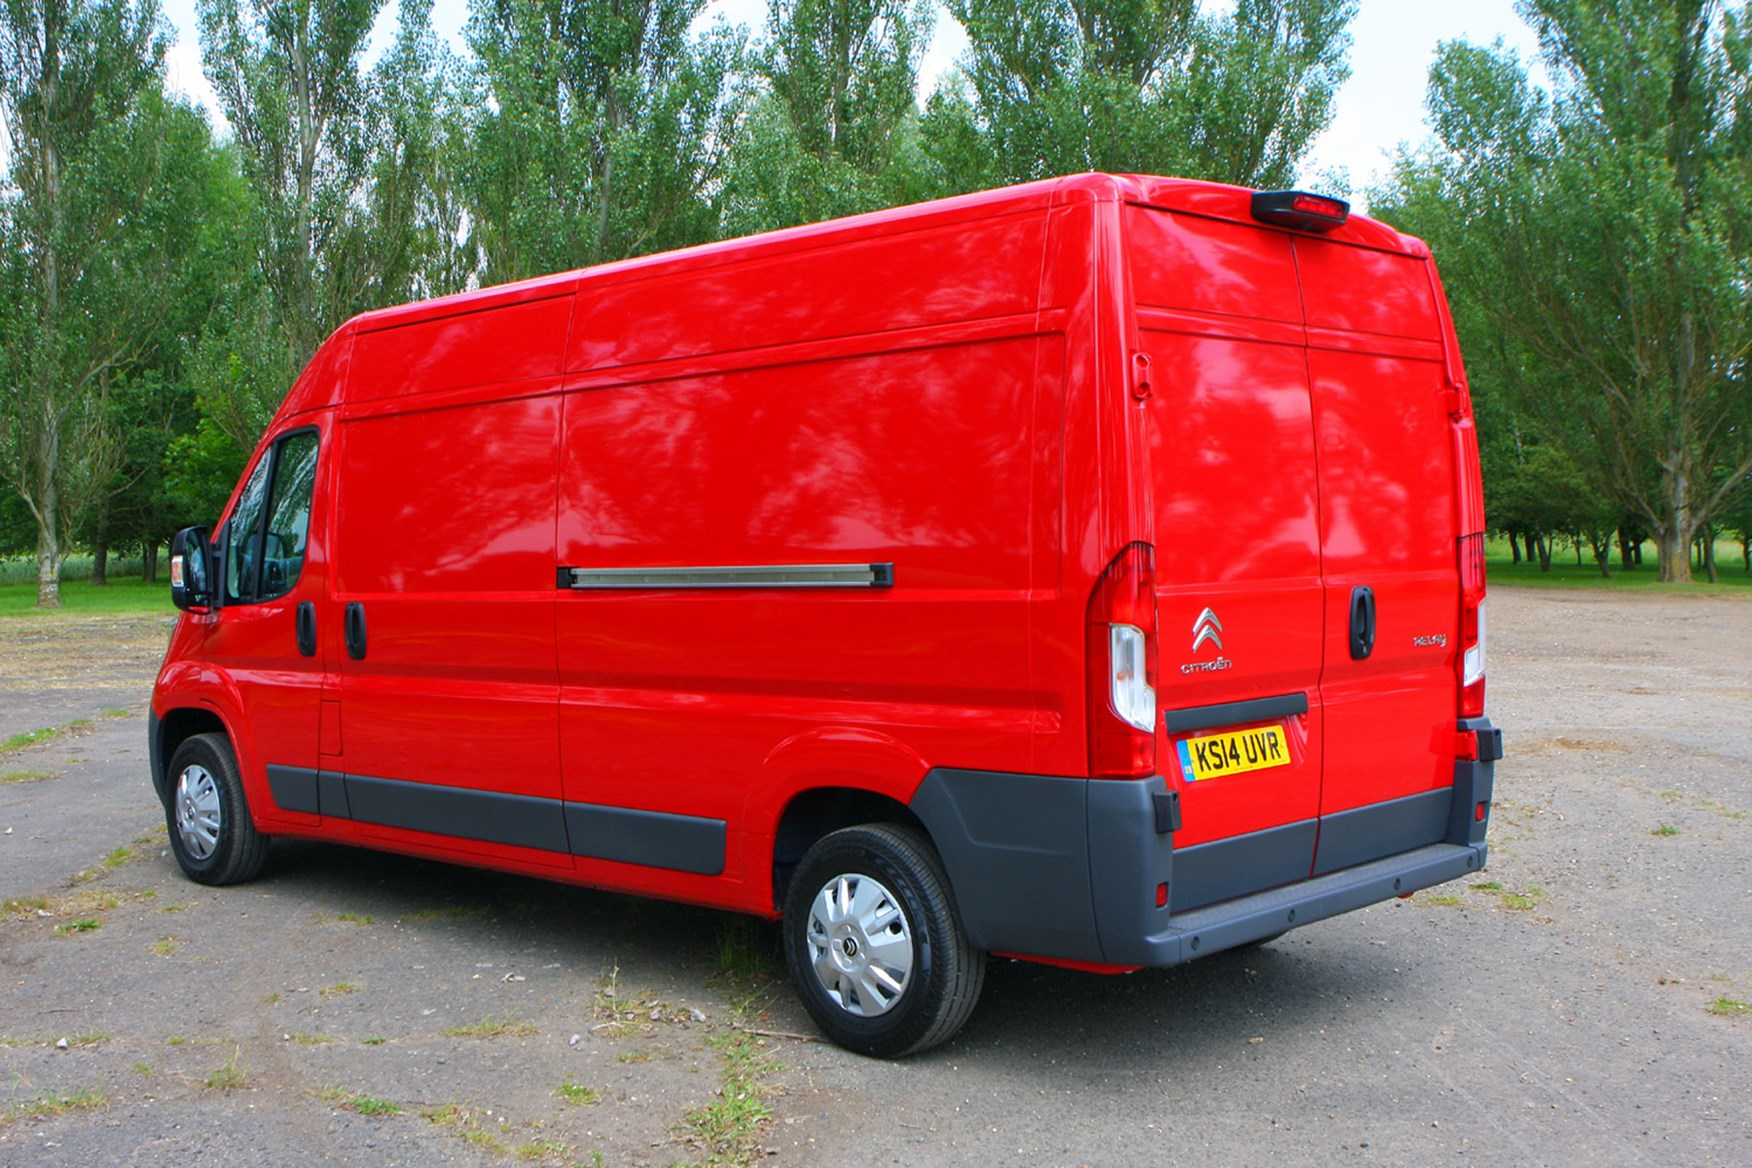 Citroen Relay 2.2 HDi 130 review - rear view, red